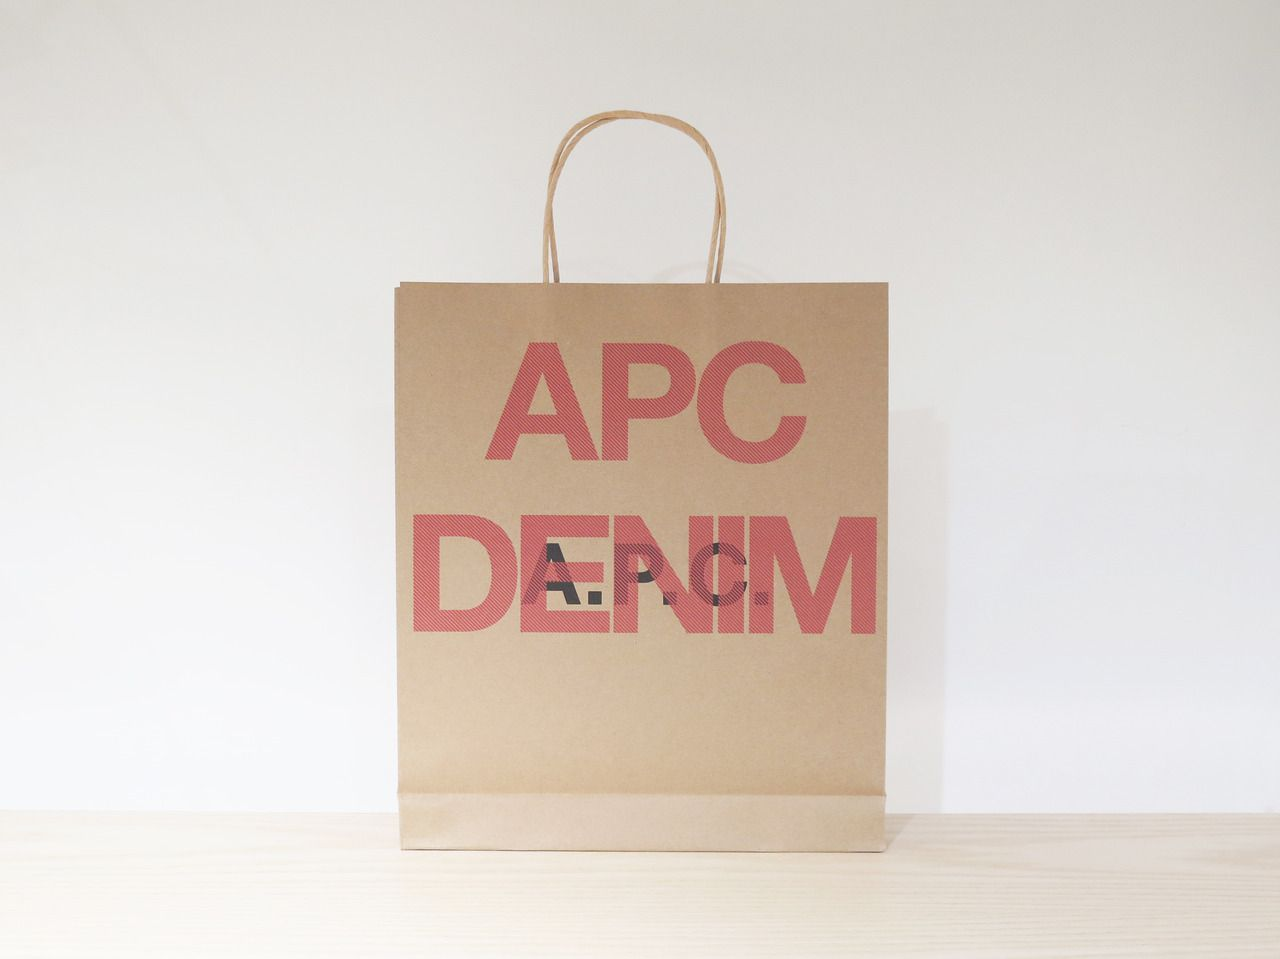 Apcofficial New A P C Denim Kraft Paper Bag I D E N T I T Y